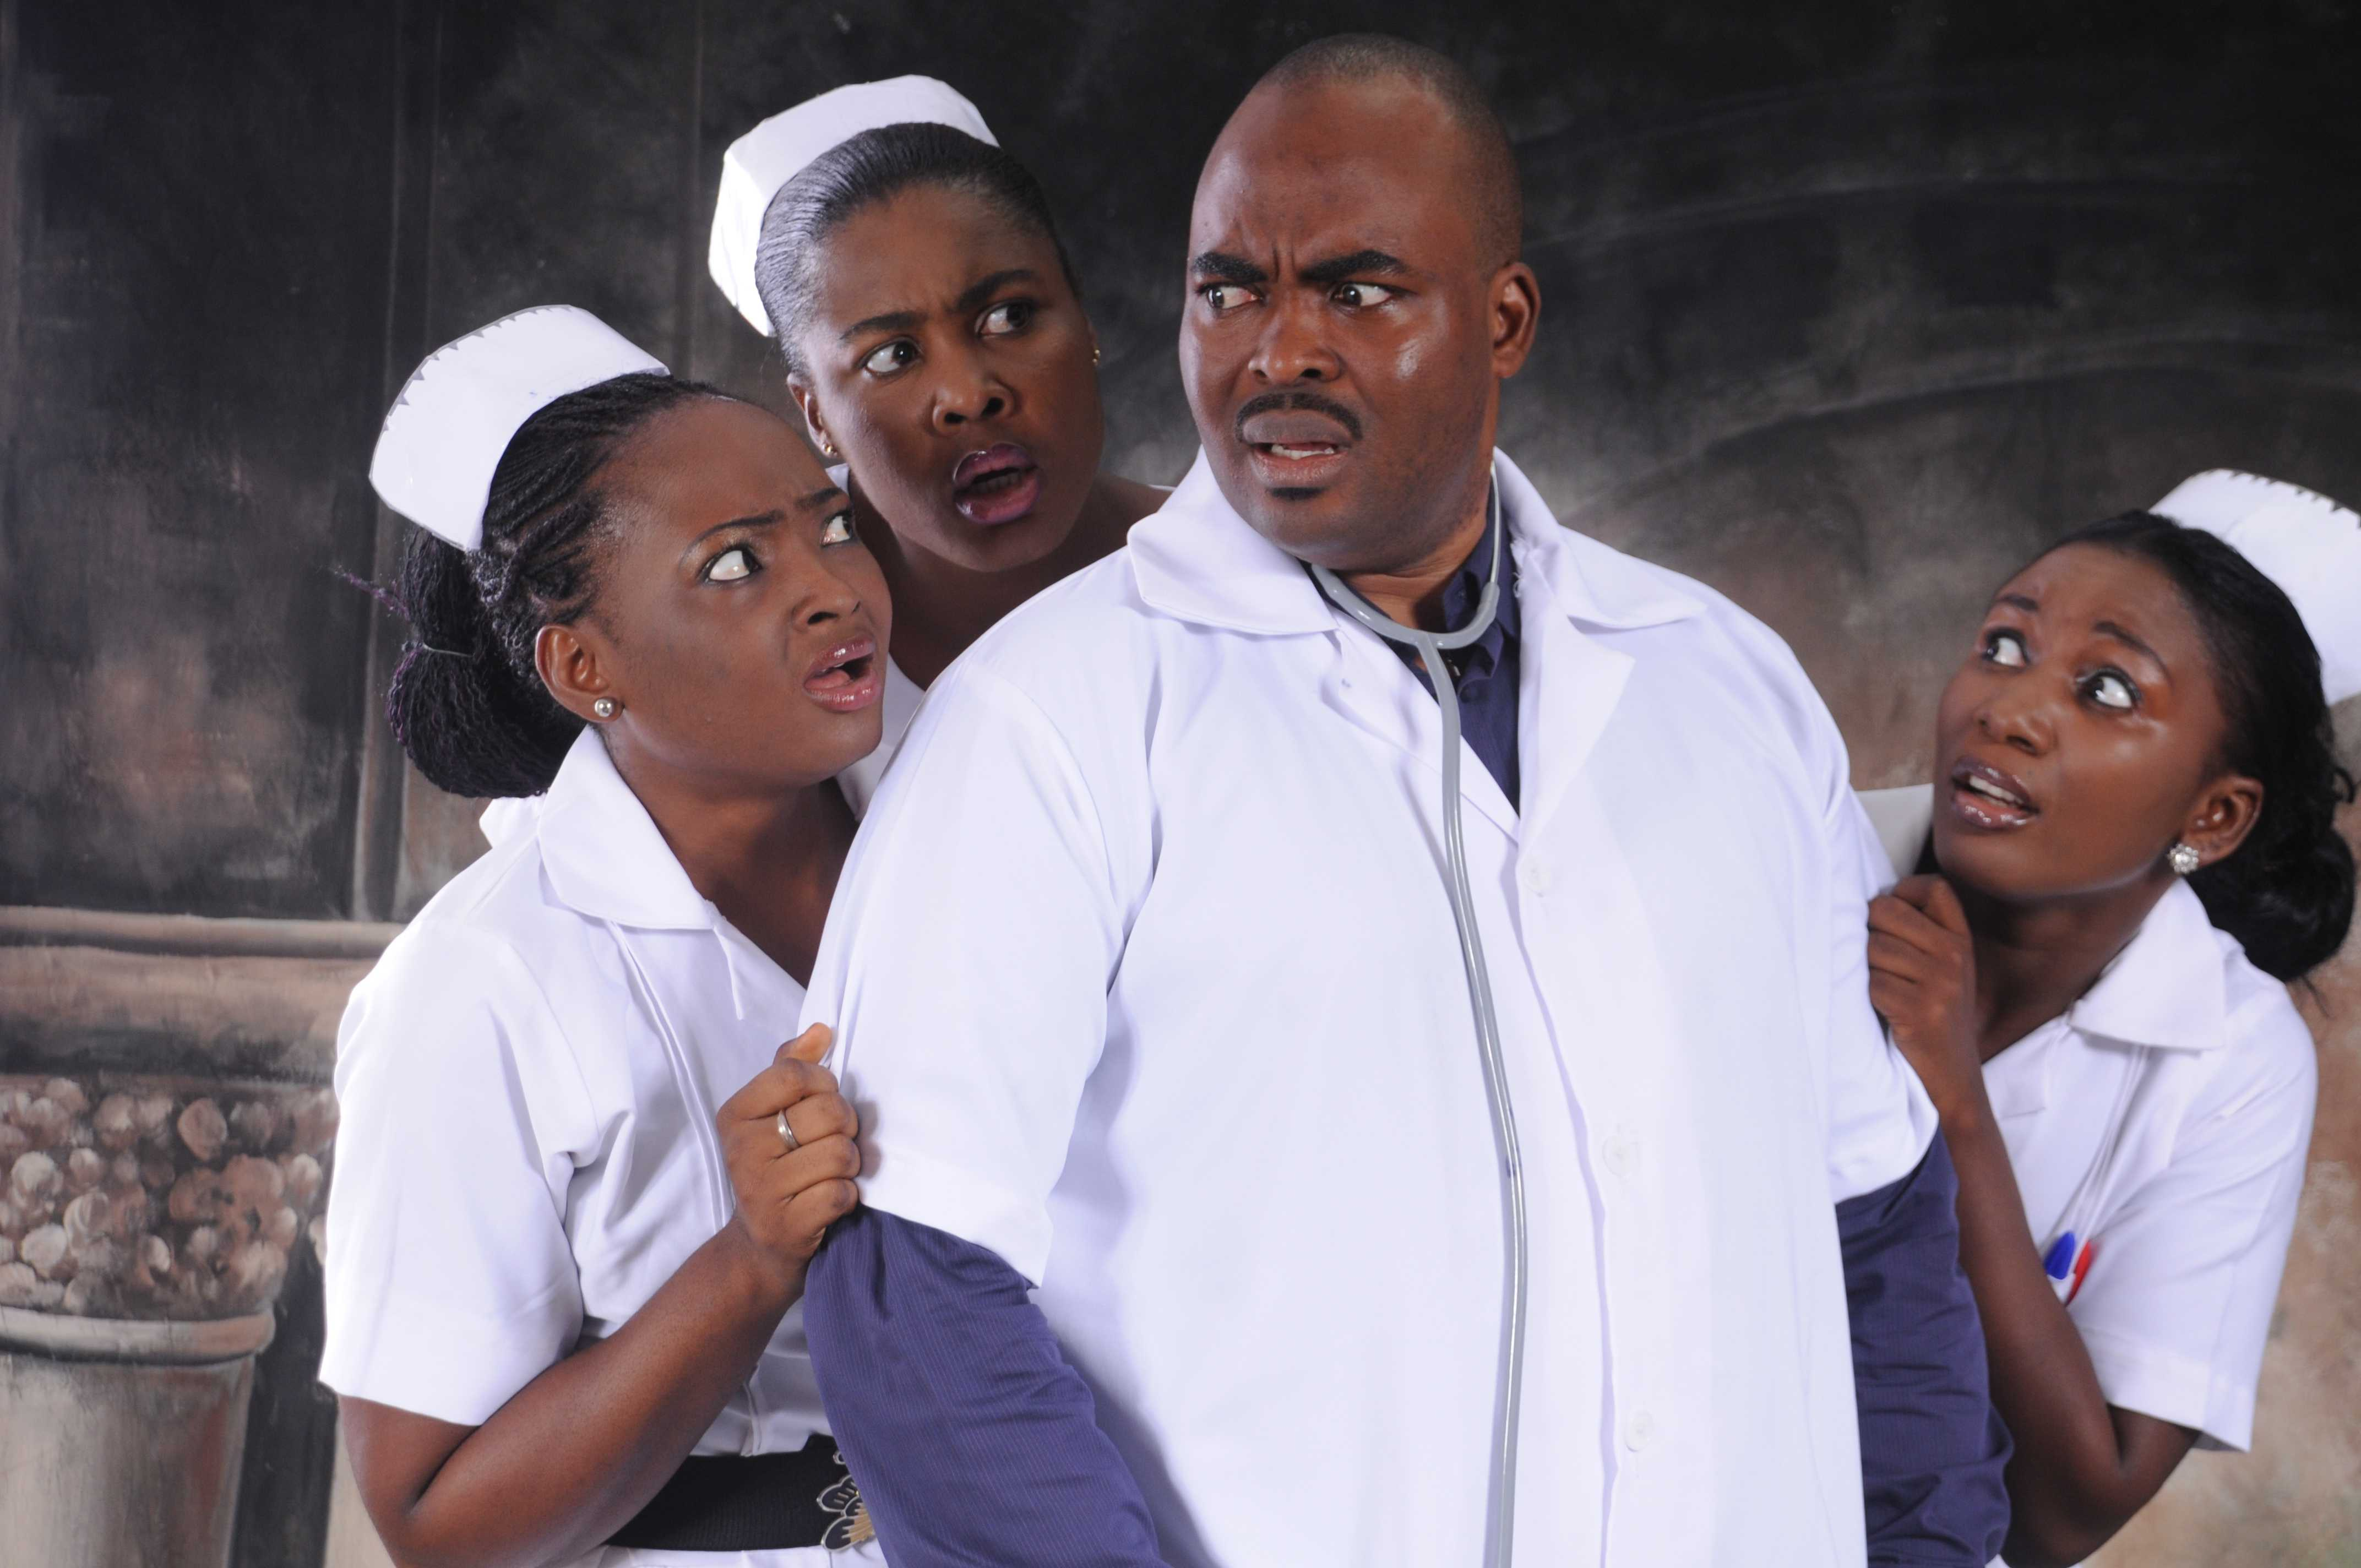 Clinic: actors of a comedy series